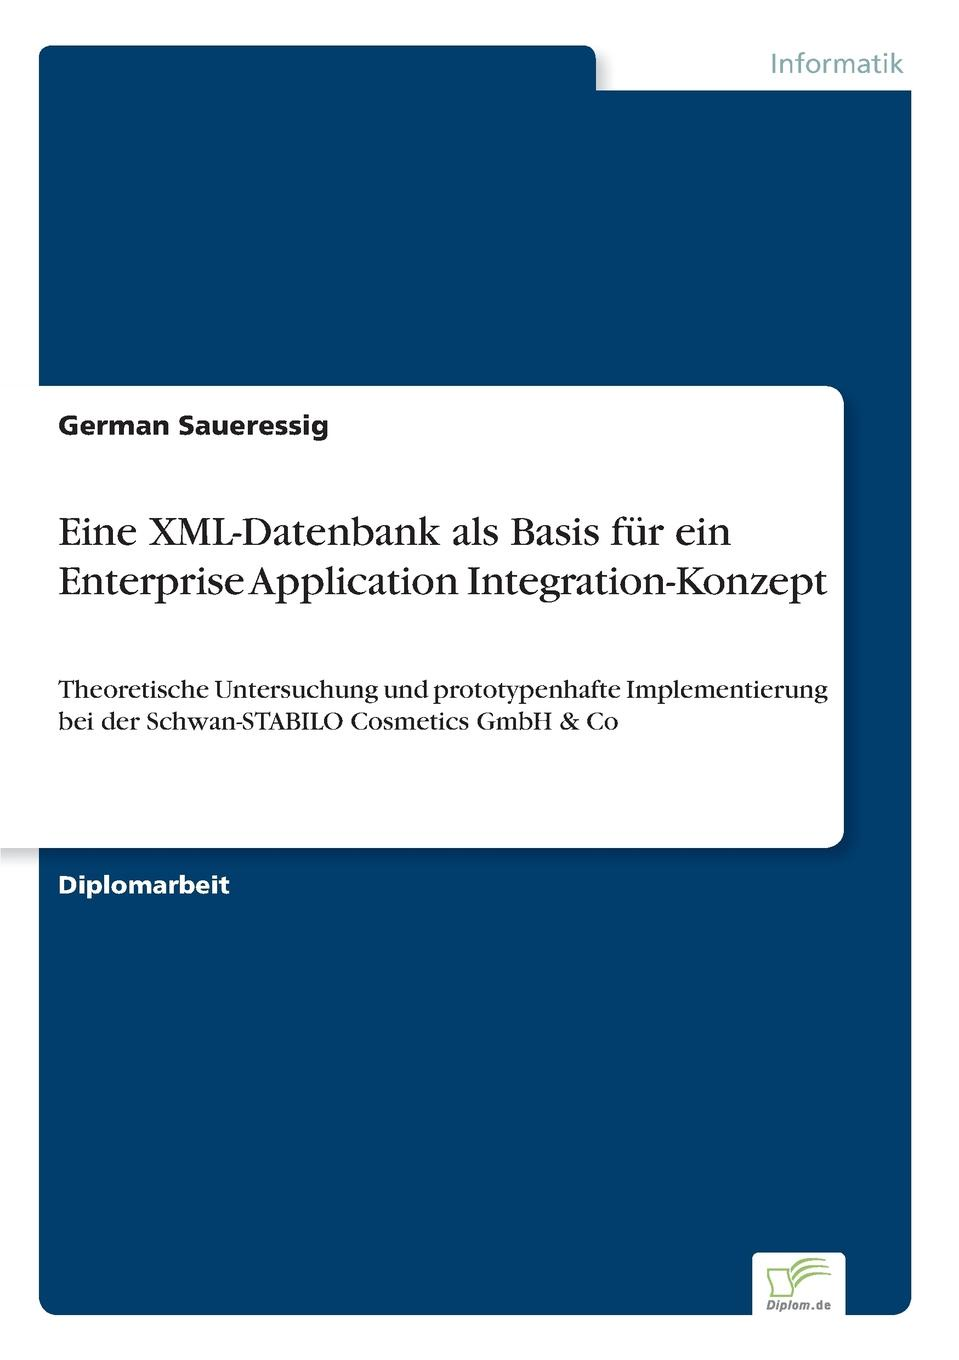 German Saueressig Eine XML-Datenbank als Basis fur ein Enterprise Application Integration-Konzept sitemap 139 xml